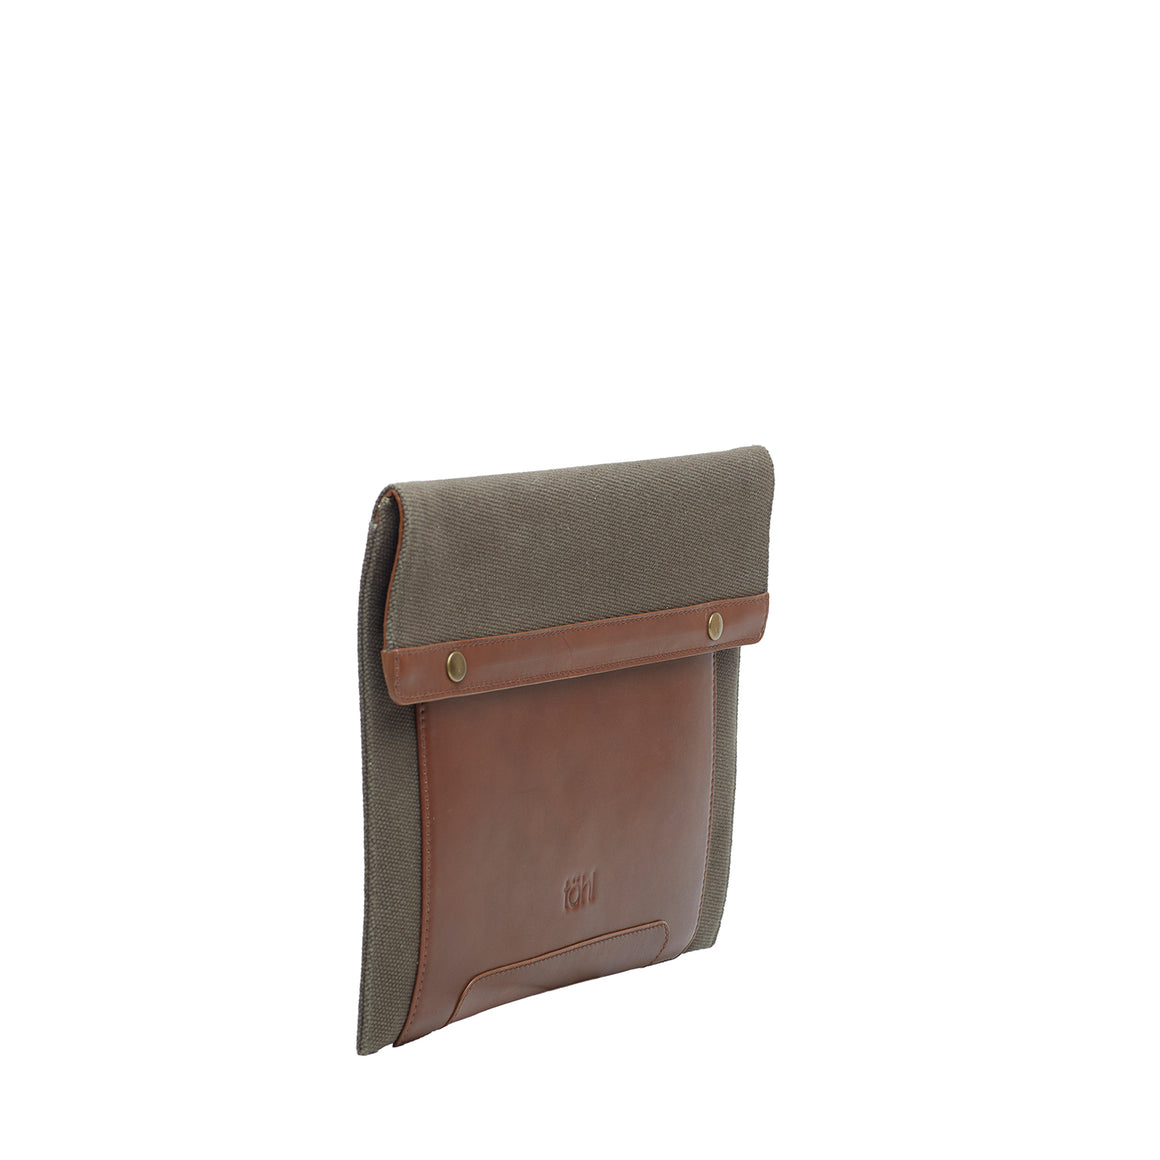 LC 0001 - TOHL BORDA MEN'S IPAD SLEEVE - OLIVE